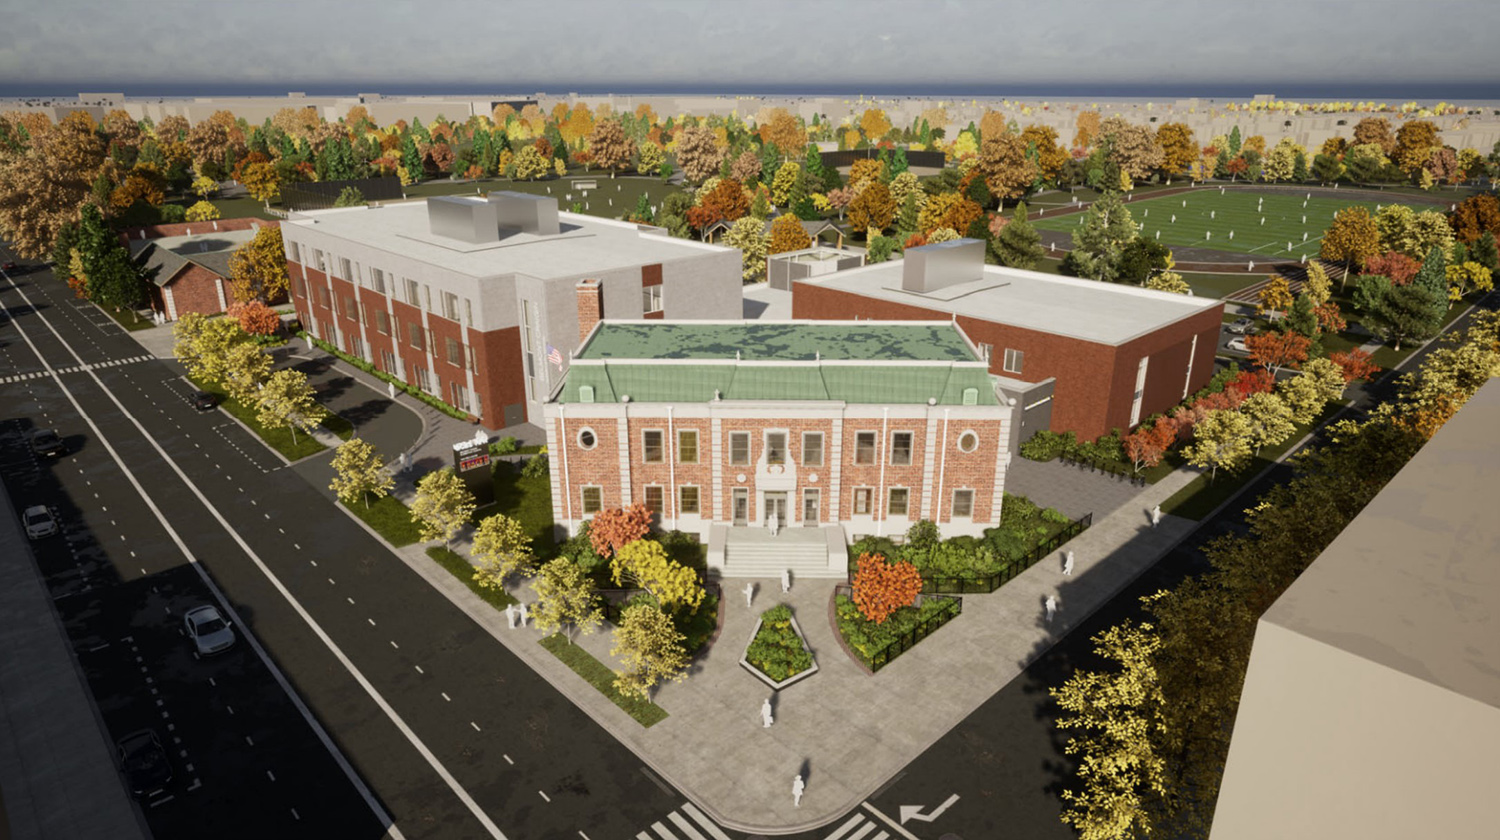 Belmont Cragin Elementary School at 6100 W Fullerton Avenue. Rendering by SMNGA and FORMA Architecture